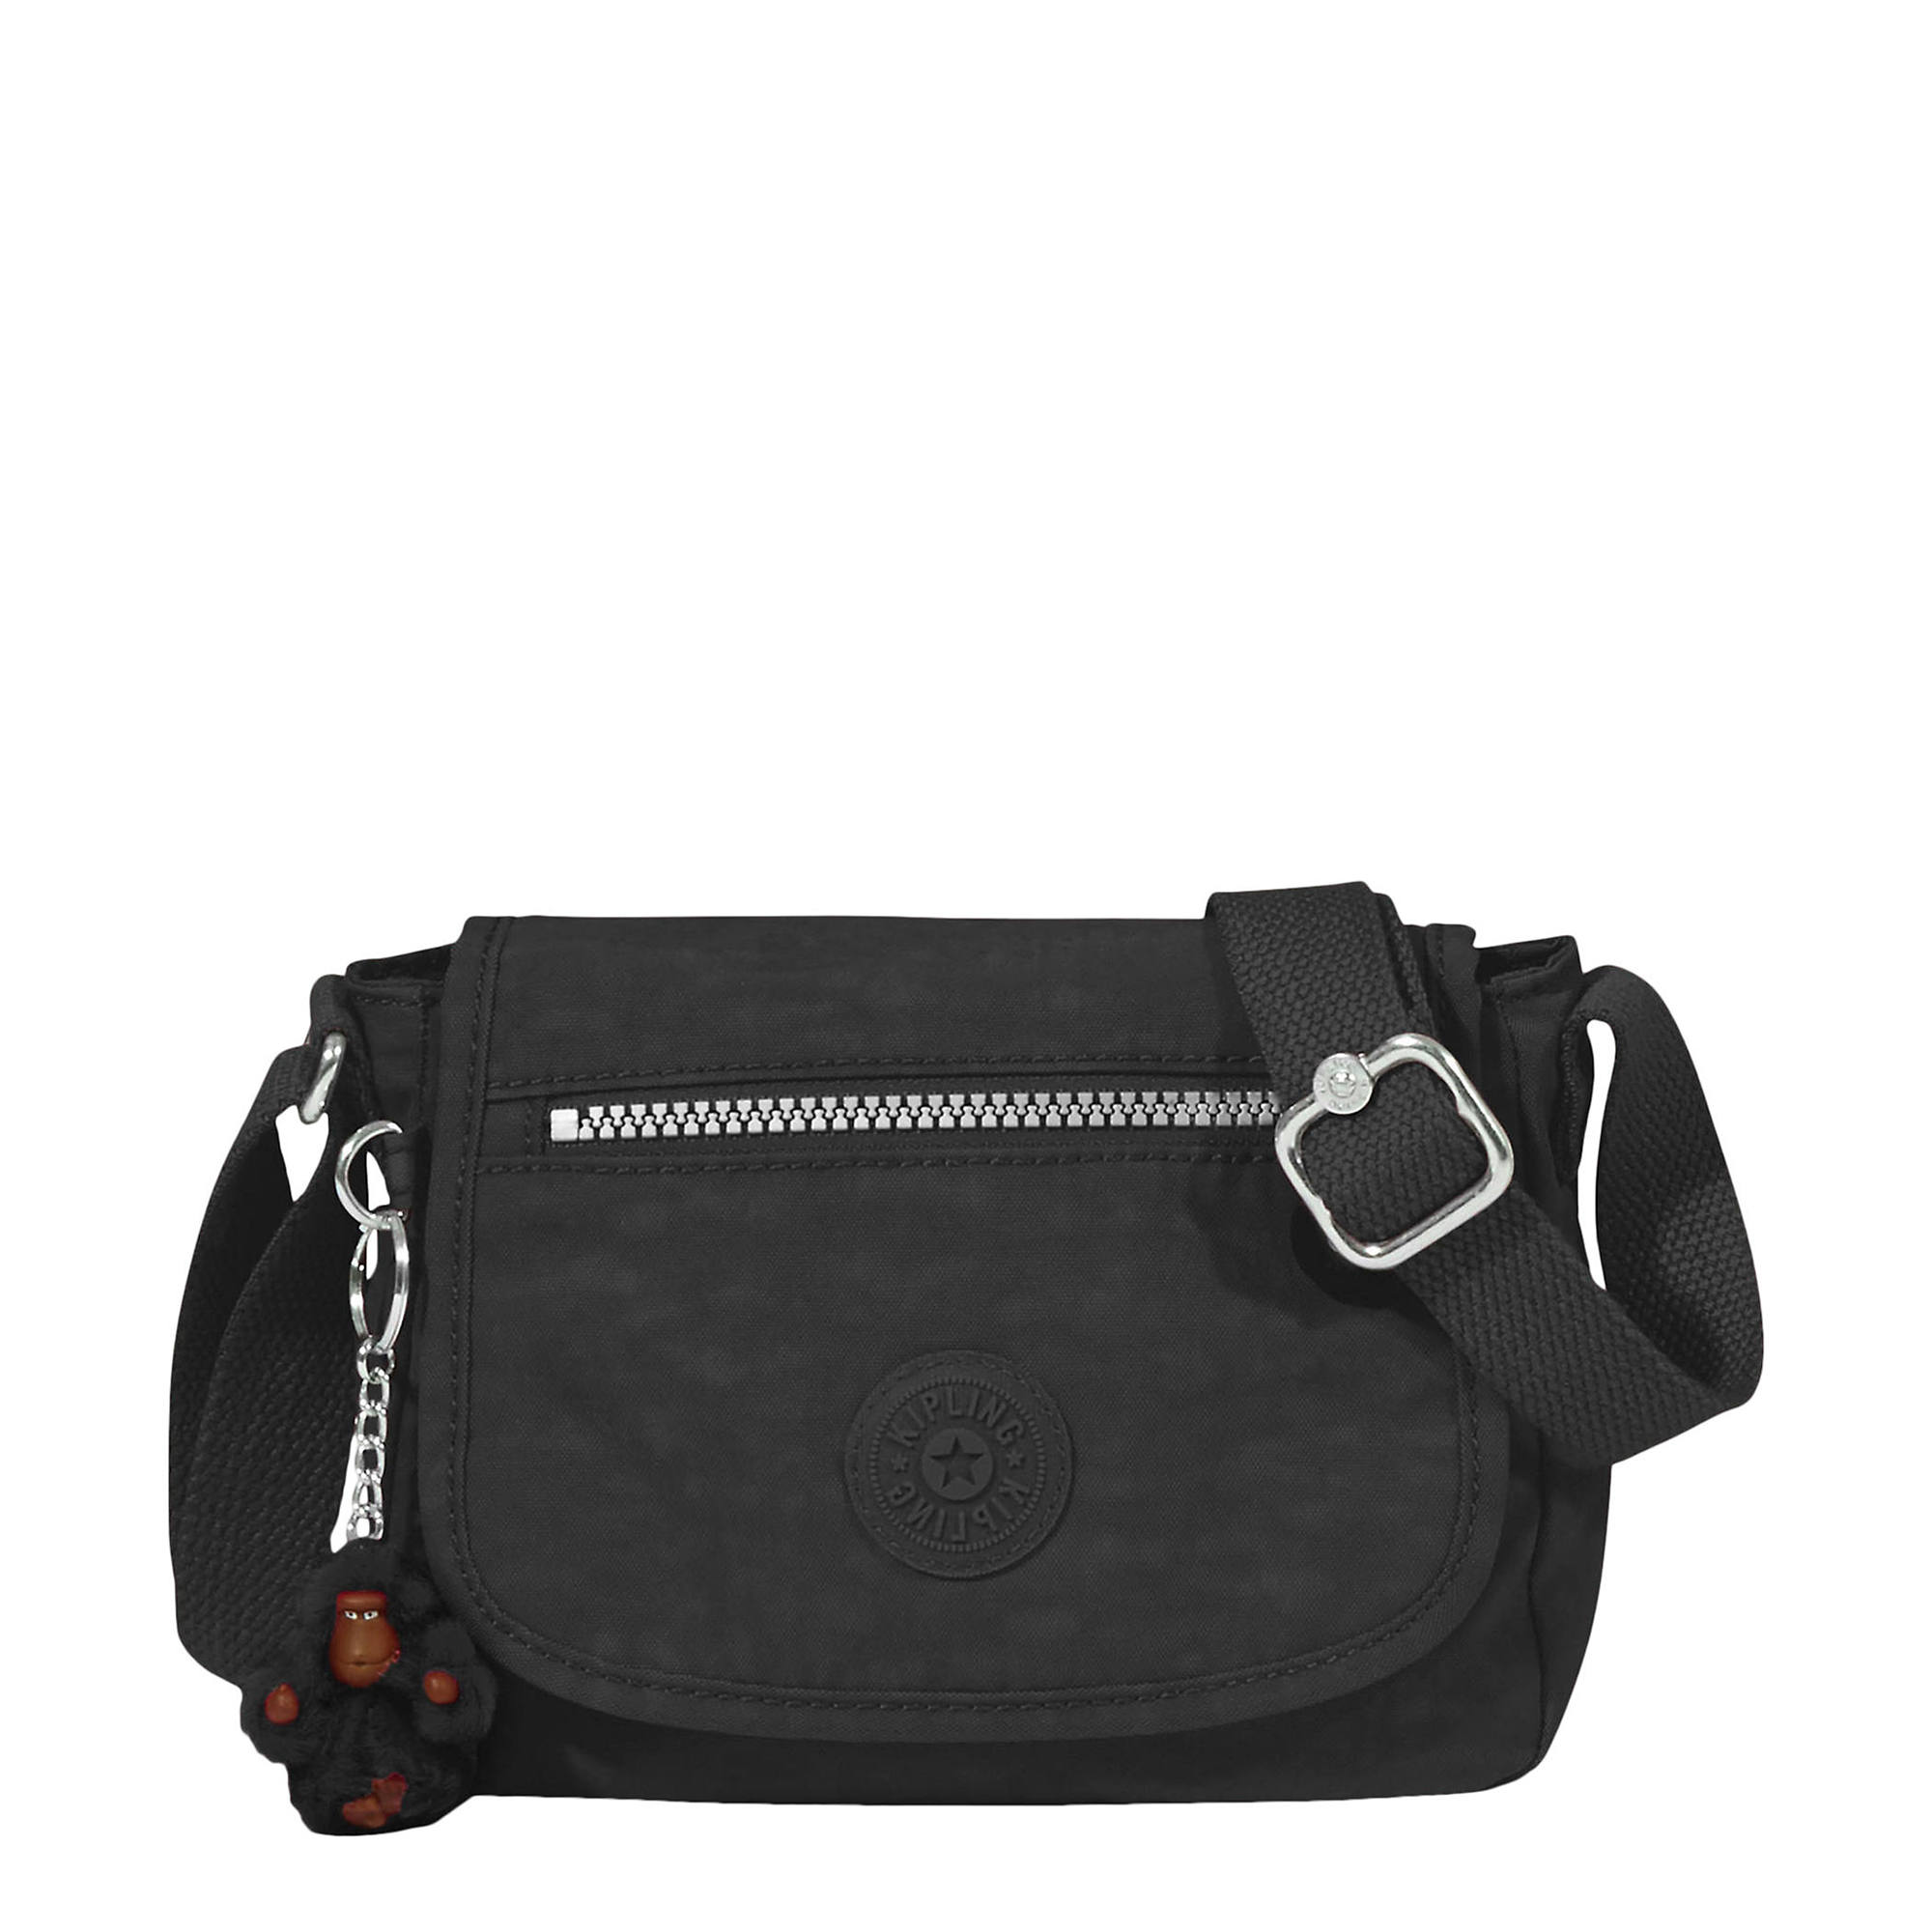 1a6e55c148d Sabian Crossbody Mini Bag - Black Classic | Kipling